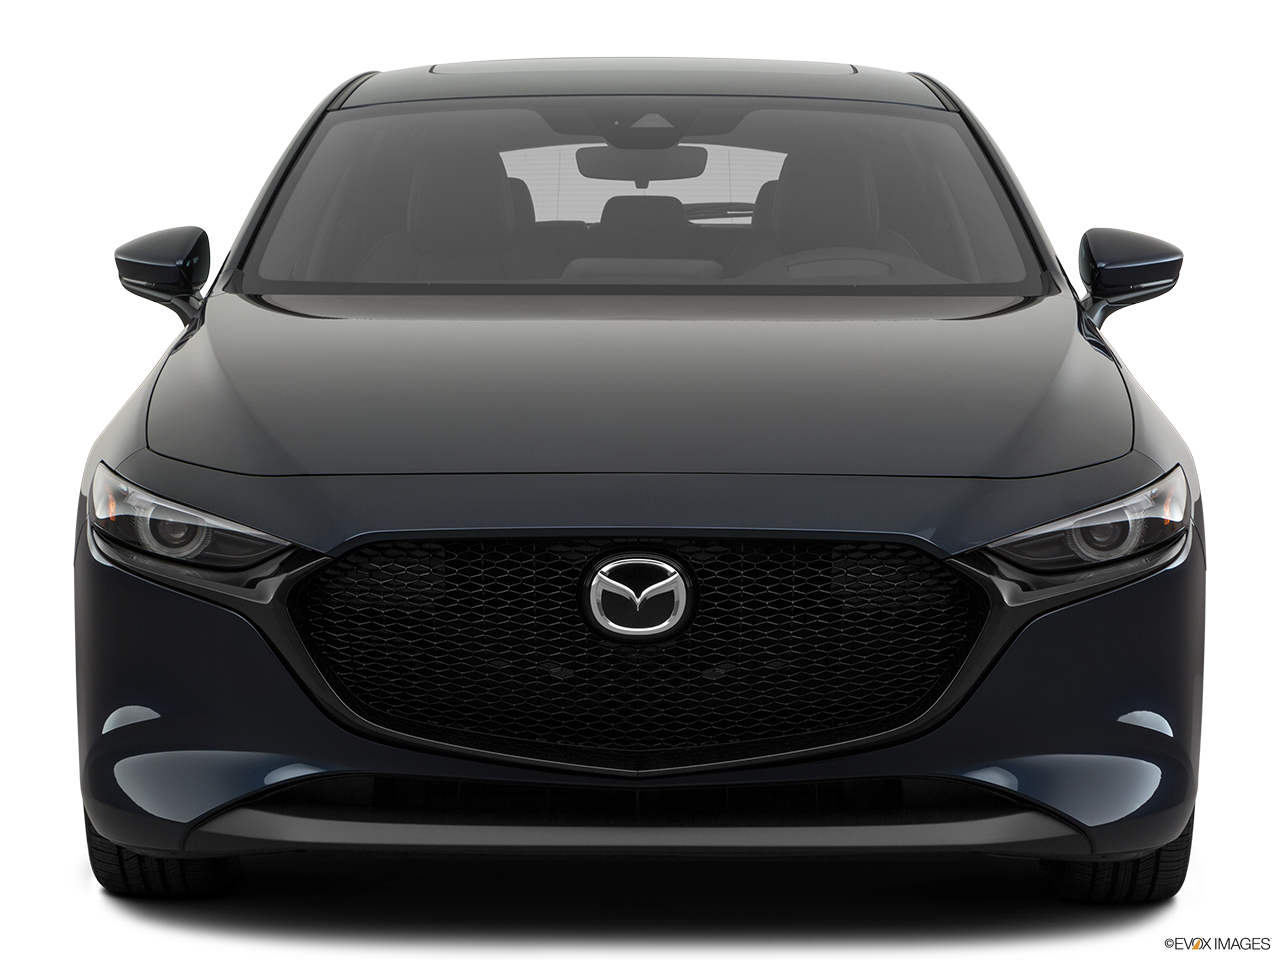 2019 Mazda Mazda3 Hatchback photo